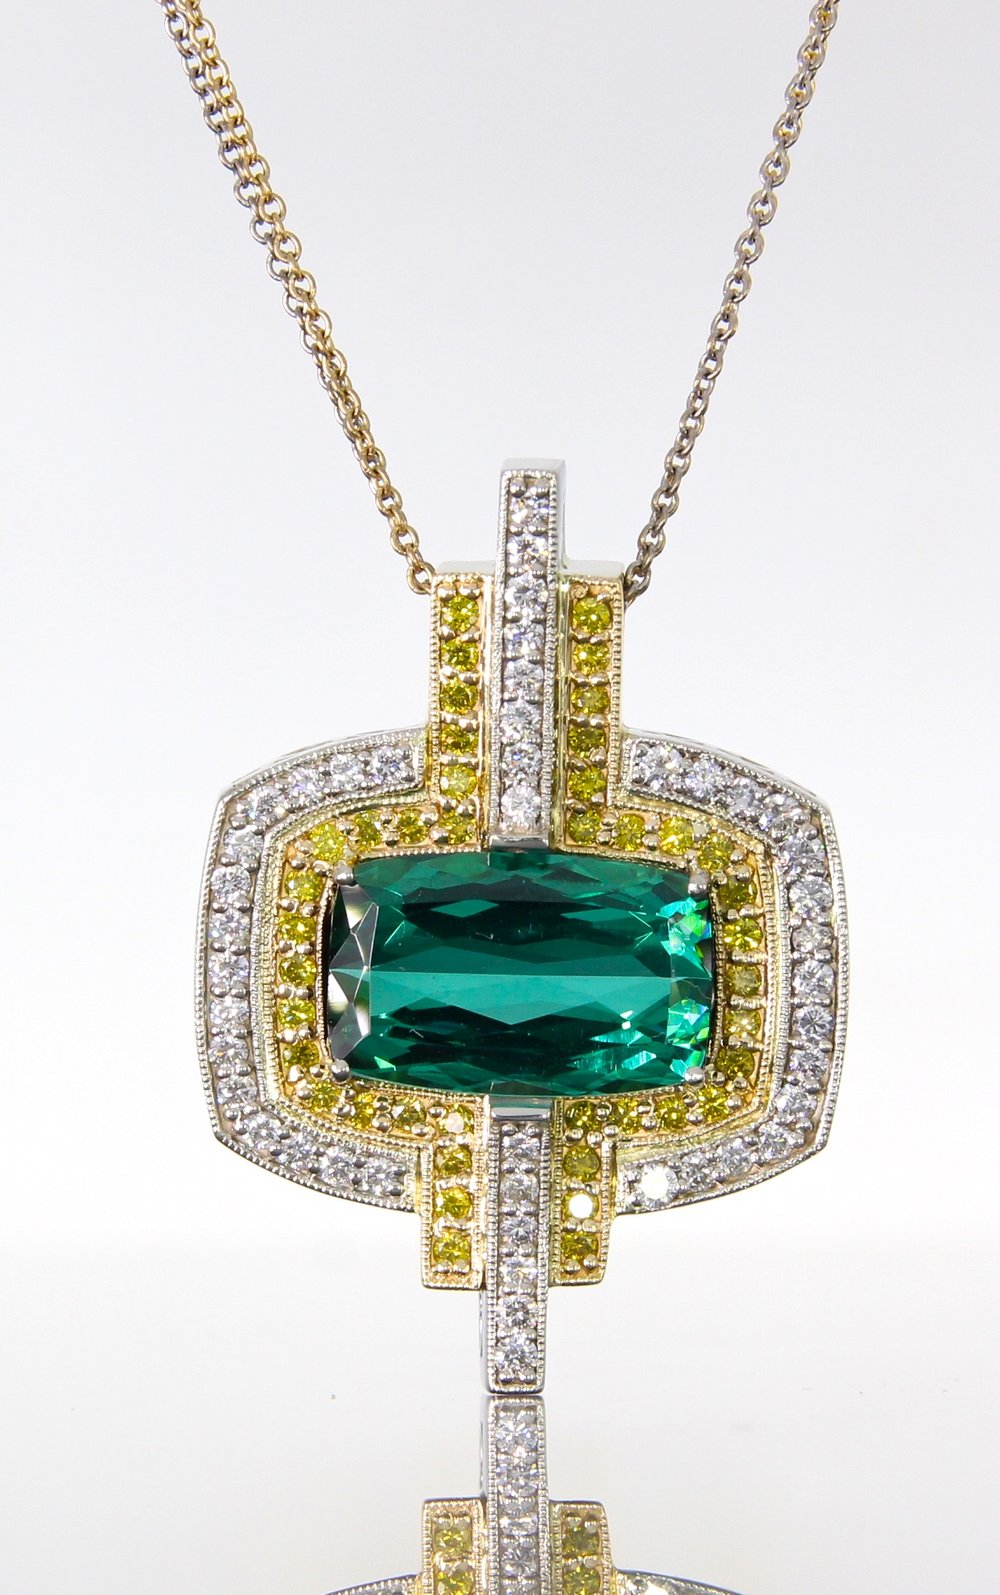 custom-tourmaline-canary-yellow-diamonds-white-yellow-gold-necklace-craft-revival-jewelry-store-grand-rapids.jpg